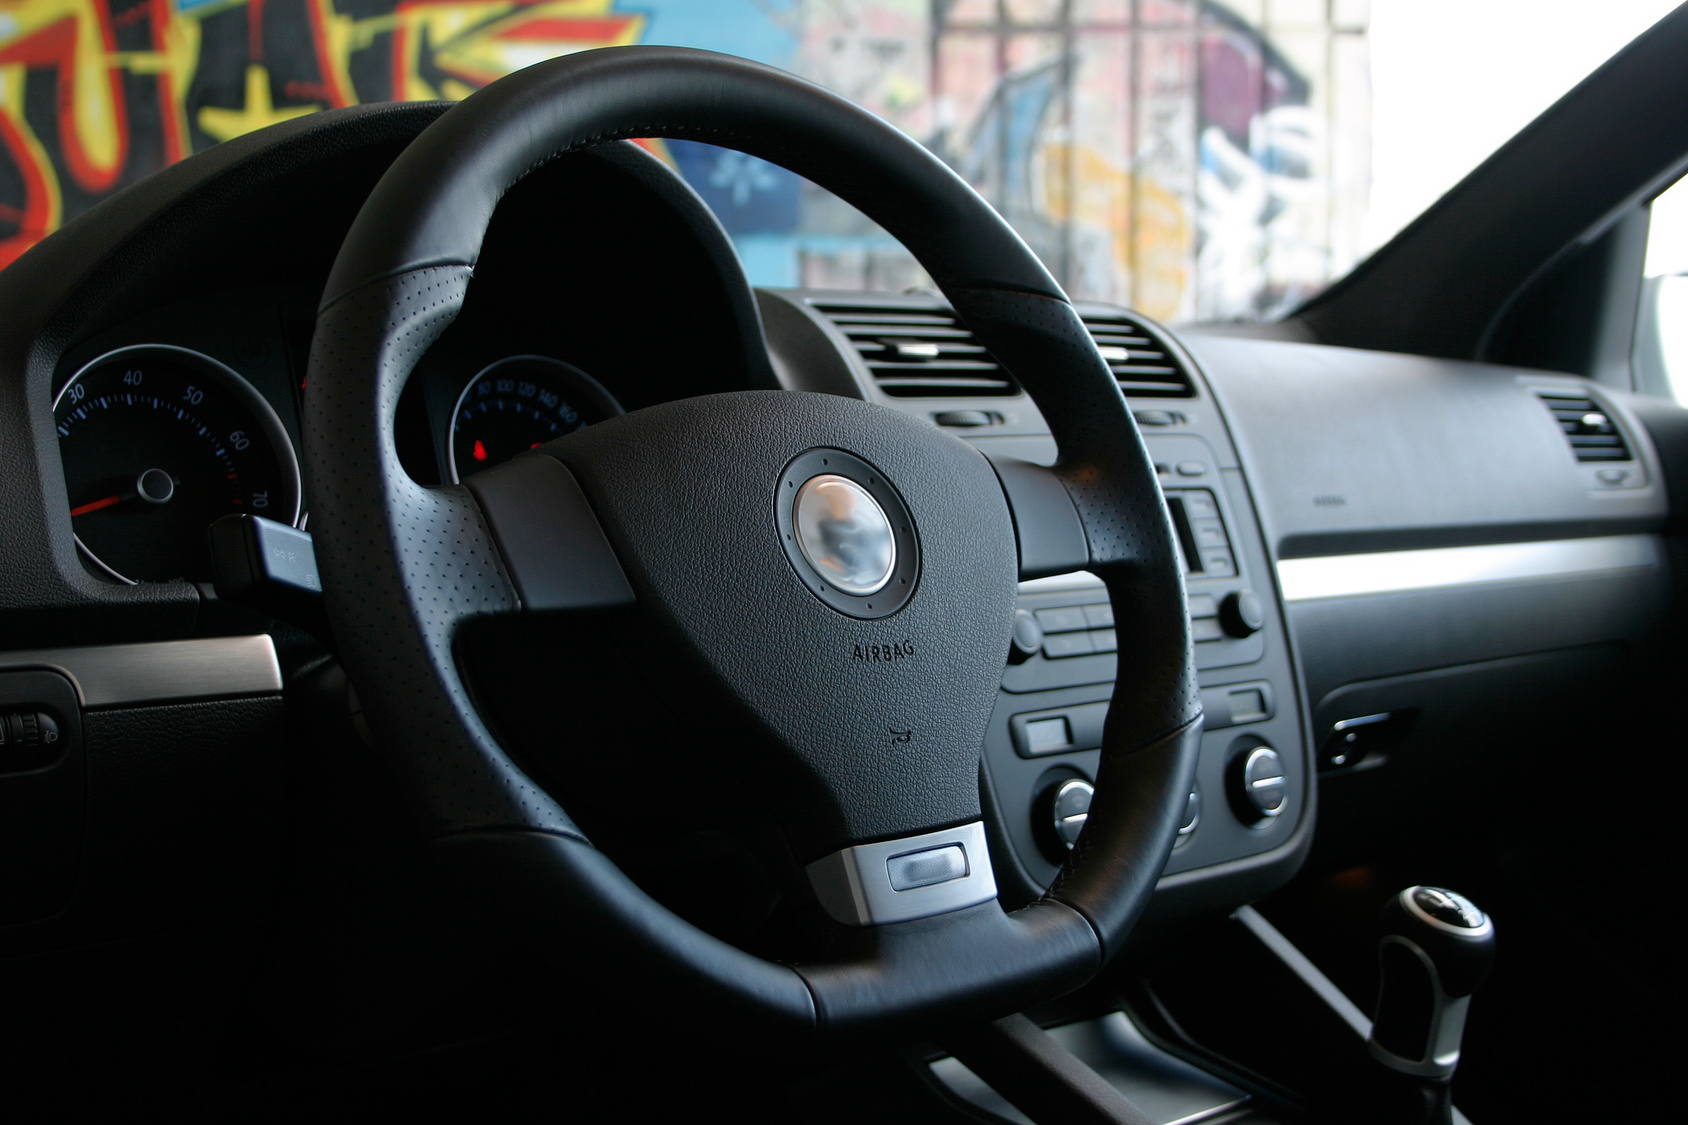 The interior steering wheel of a Volkswagen vehicle. Colorful walls in the background.